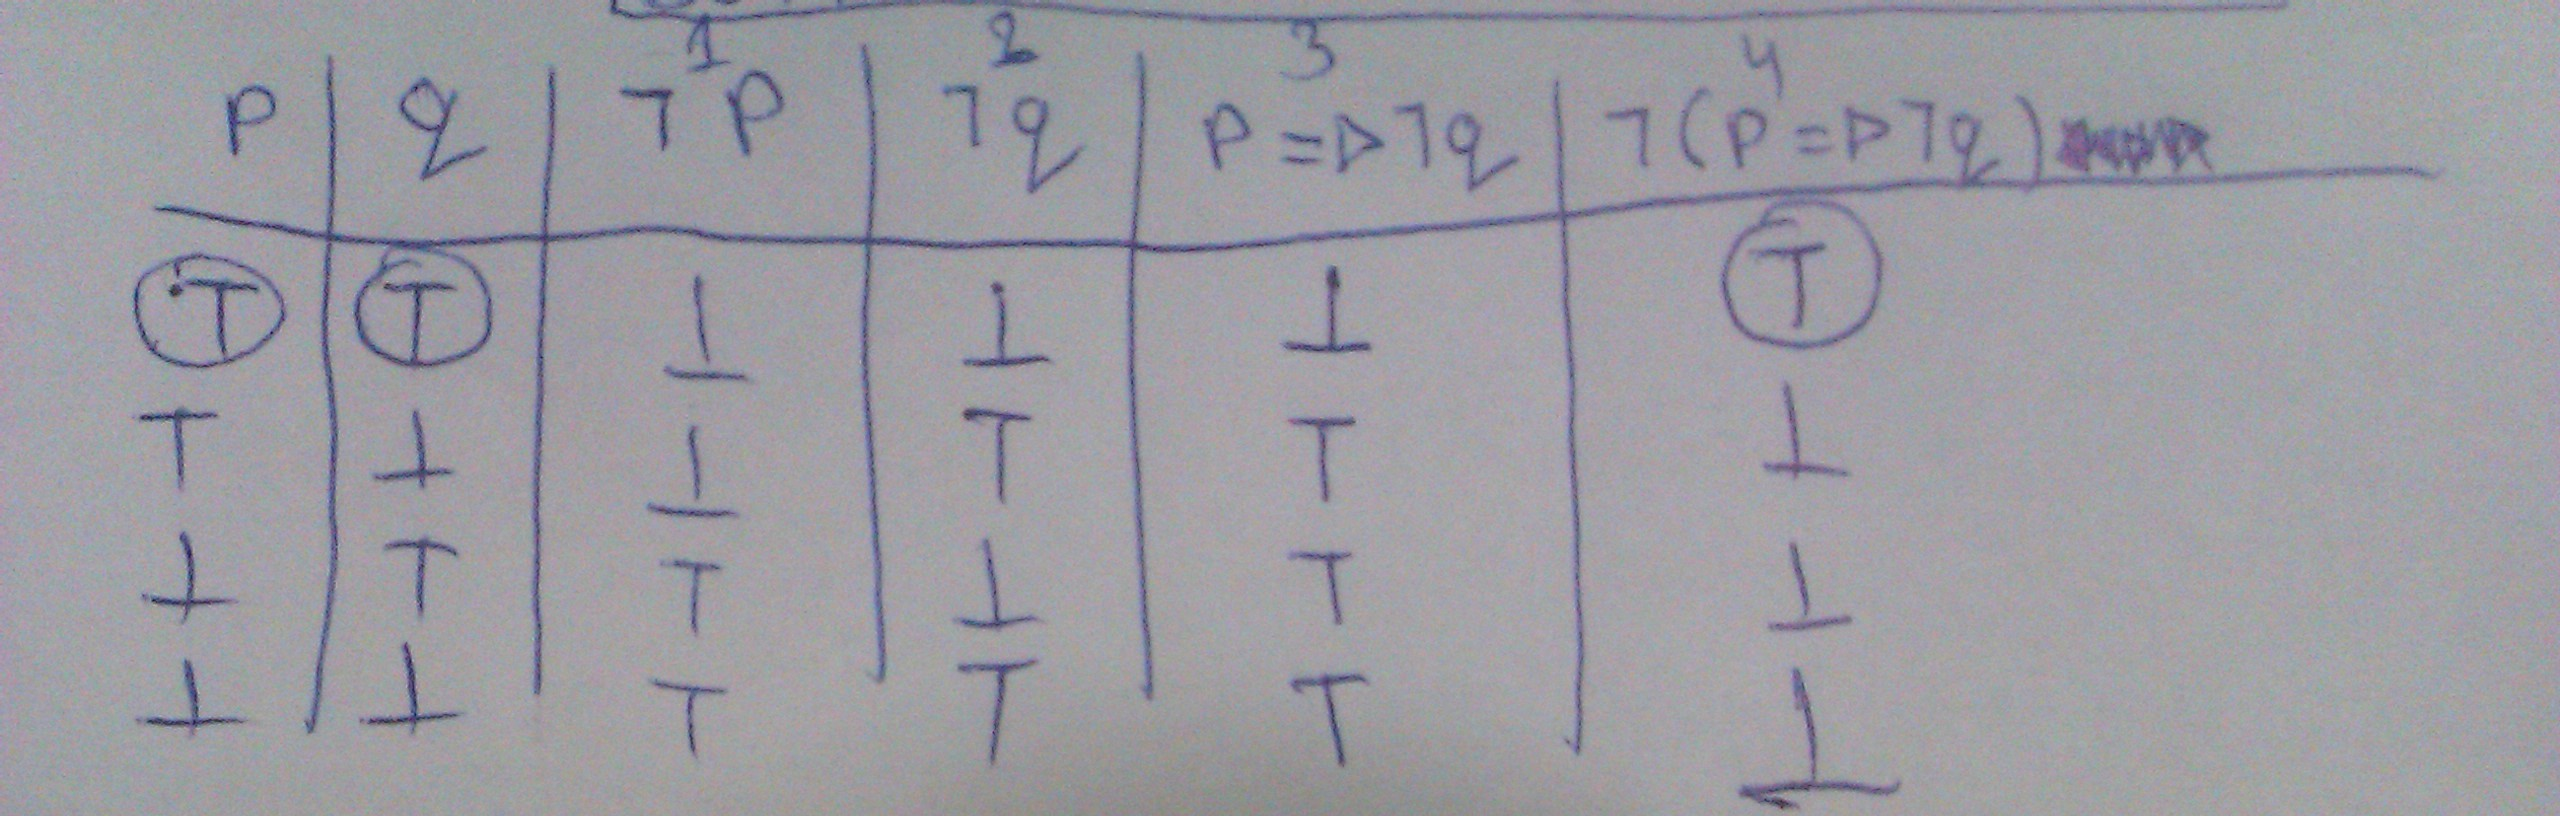 logical implication truth table example